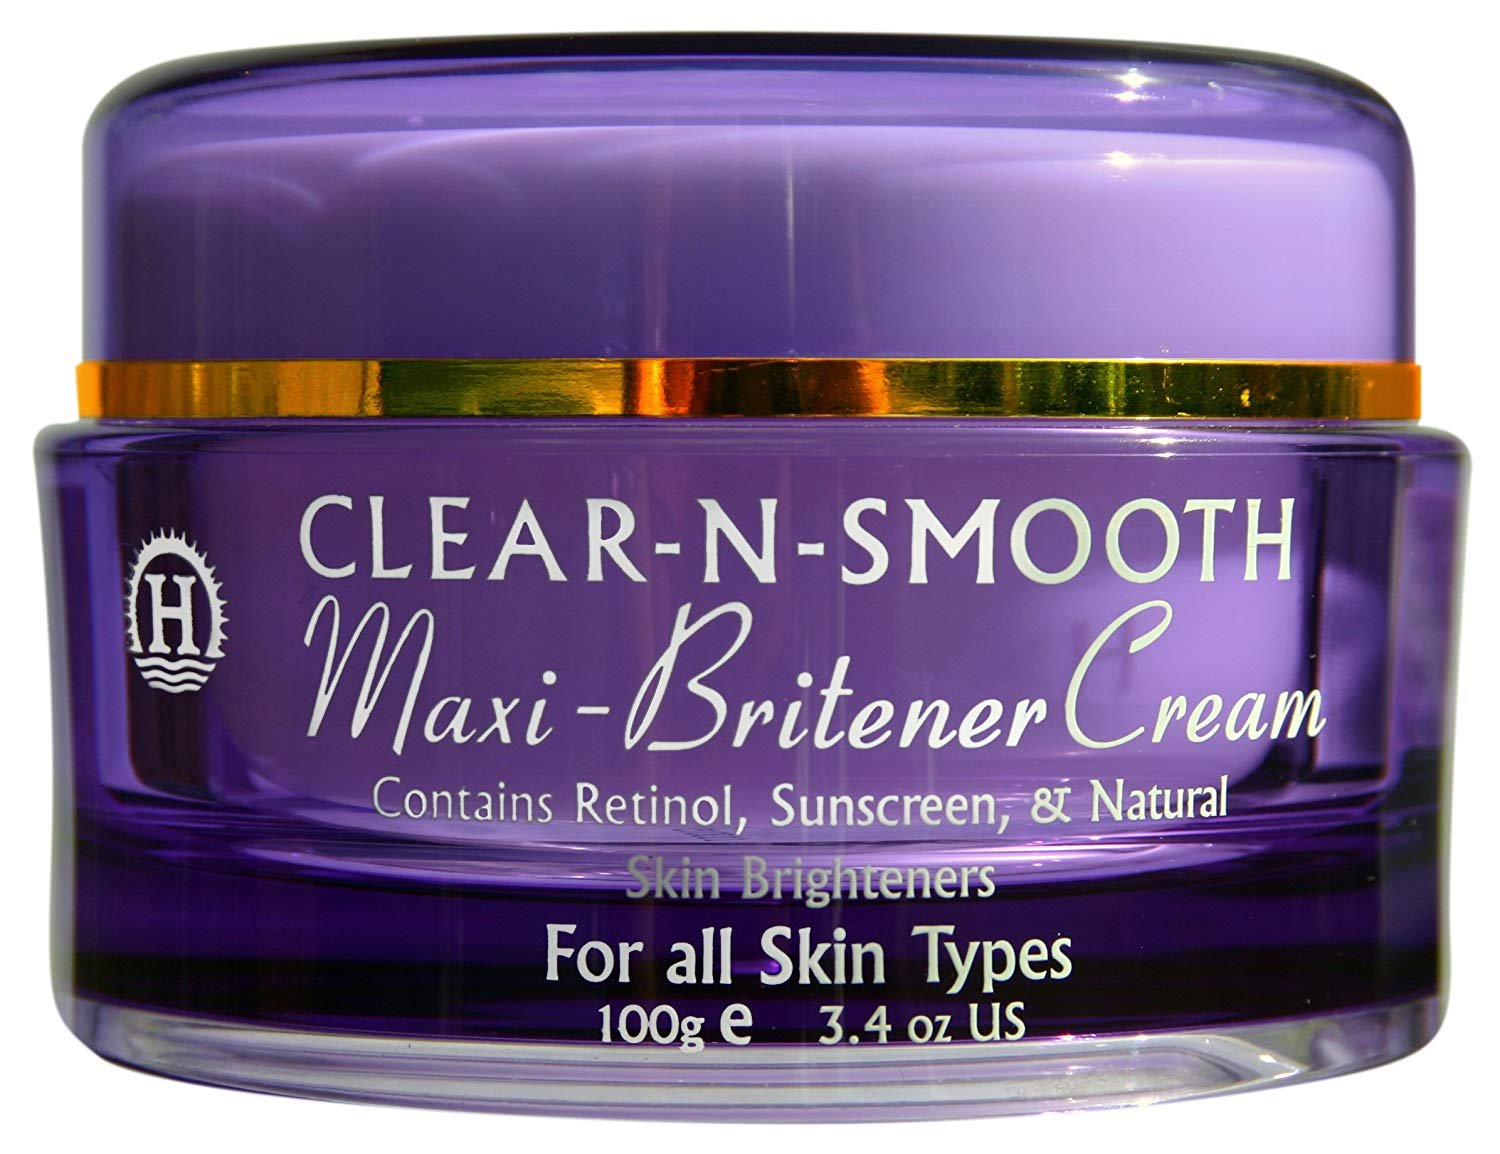 CLEAR-N-SMOOTH Intimate Brightening Cream/Crema Blanqueadora Para Partes Intimas